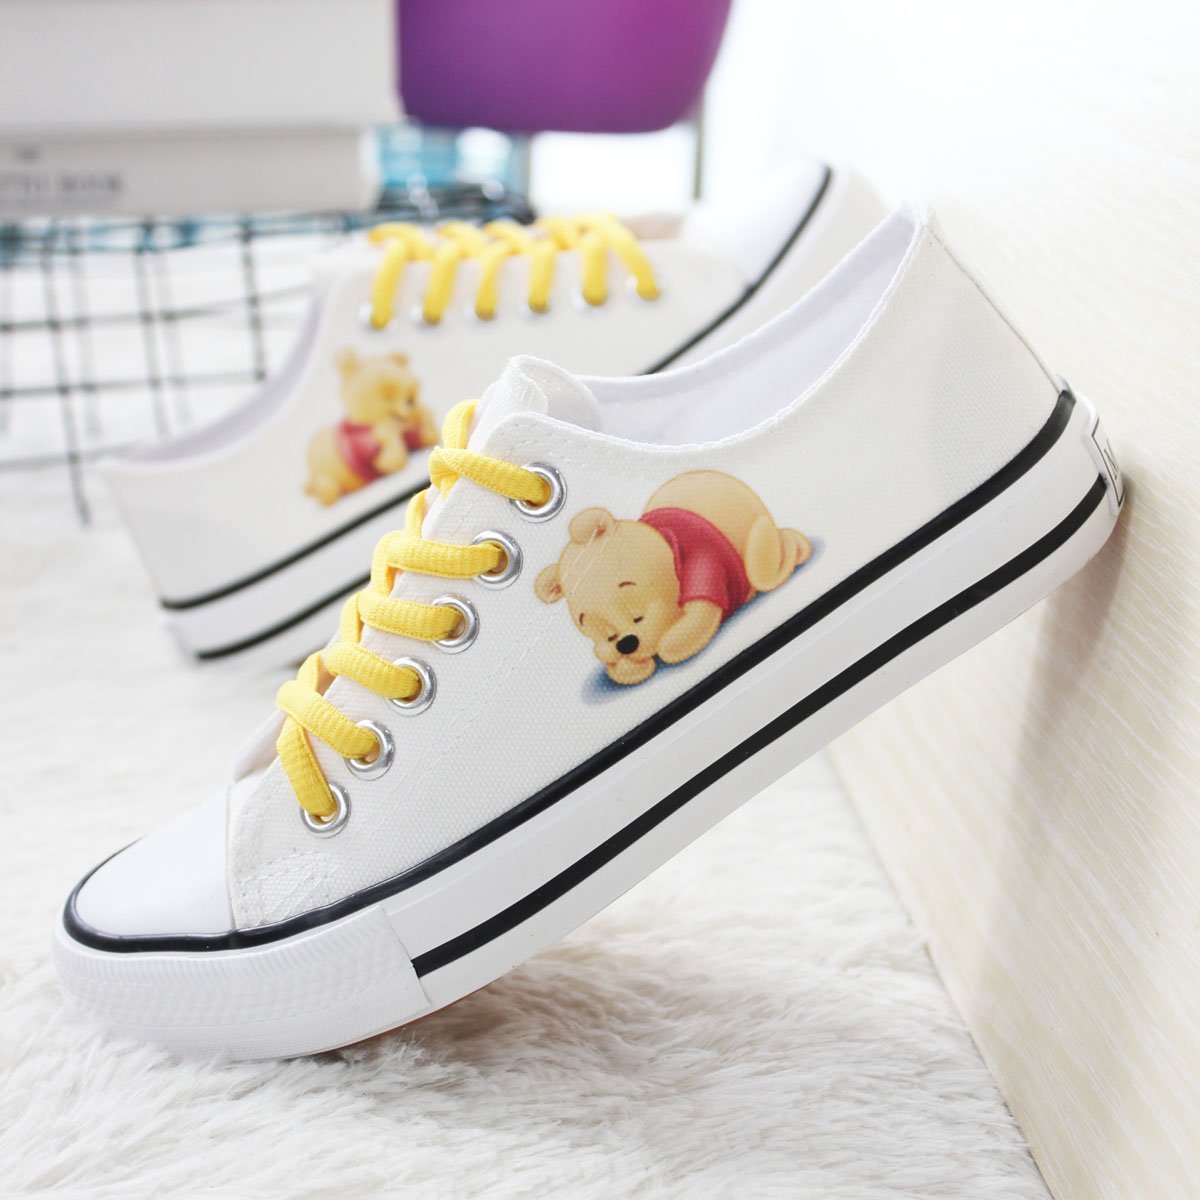 Winnie the Pooh Classic flat bottom leisure low top womens shoes canvas shoes hand painted shoes single shoes board shoes mens shoes lovers shoes